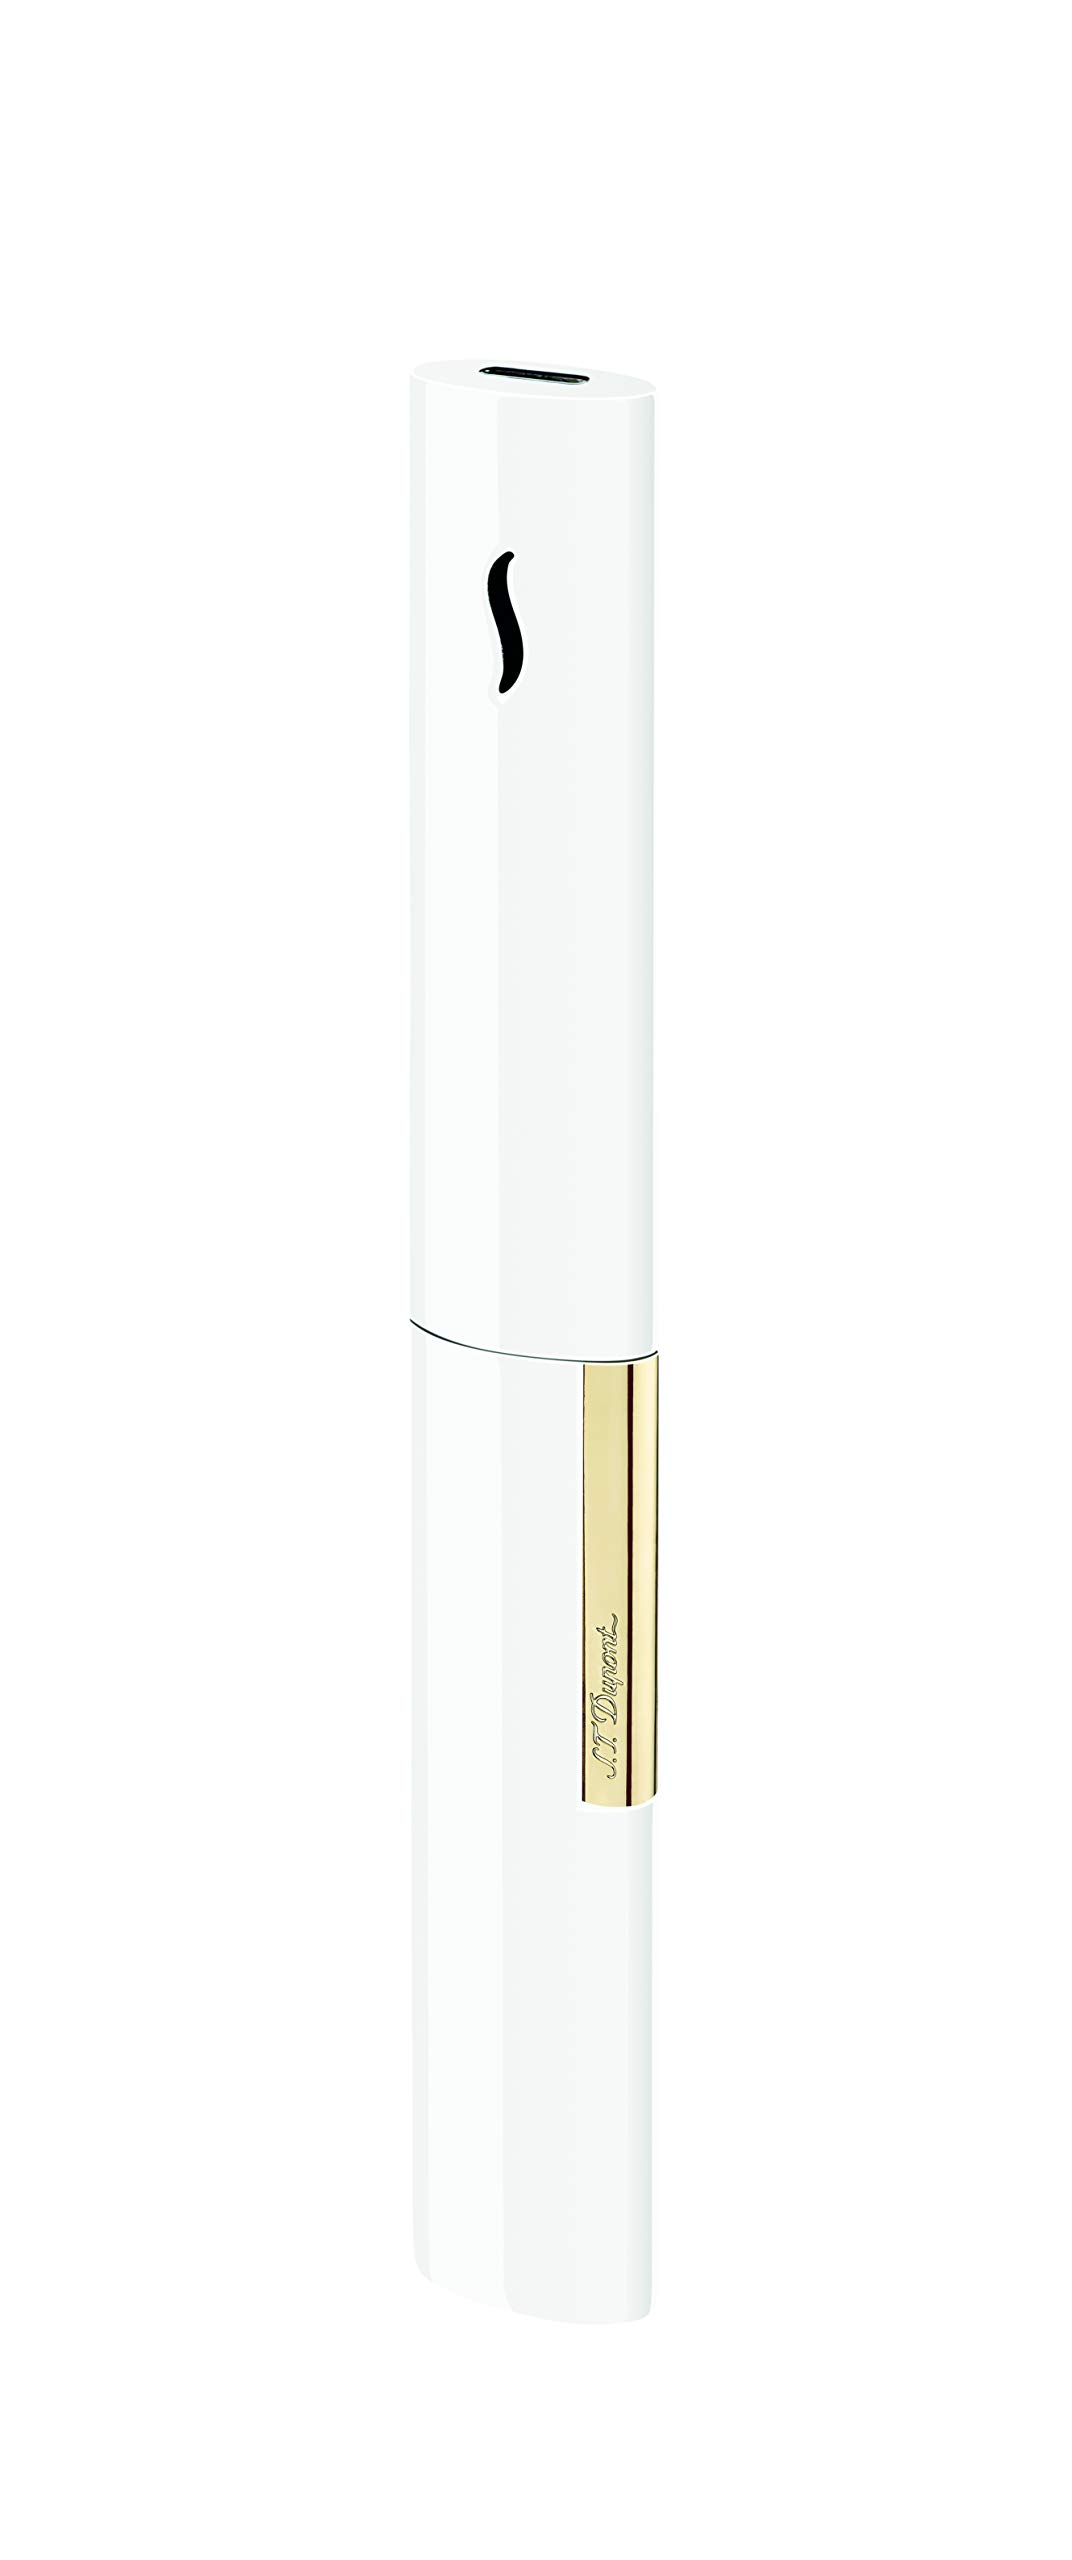 S.T. Dupont White/Gold Luxury Lighter The Wand